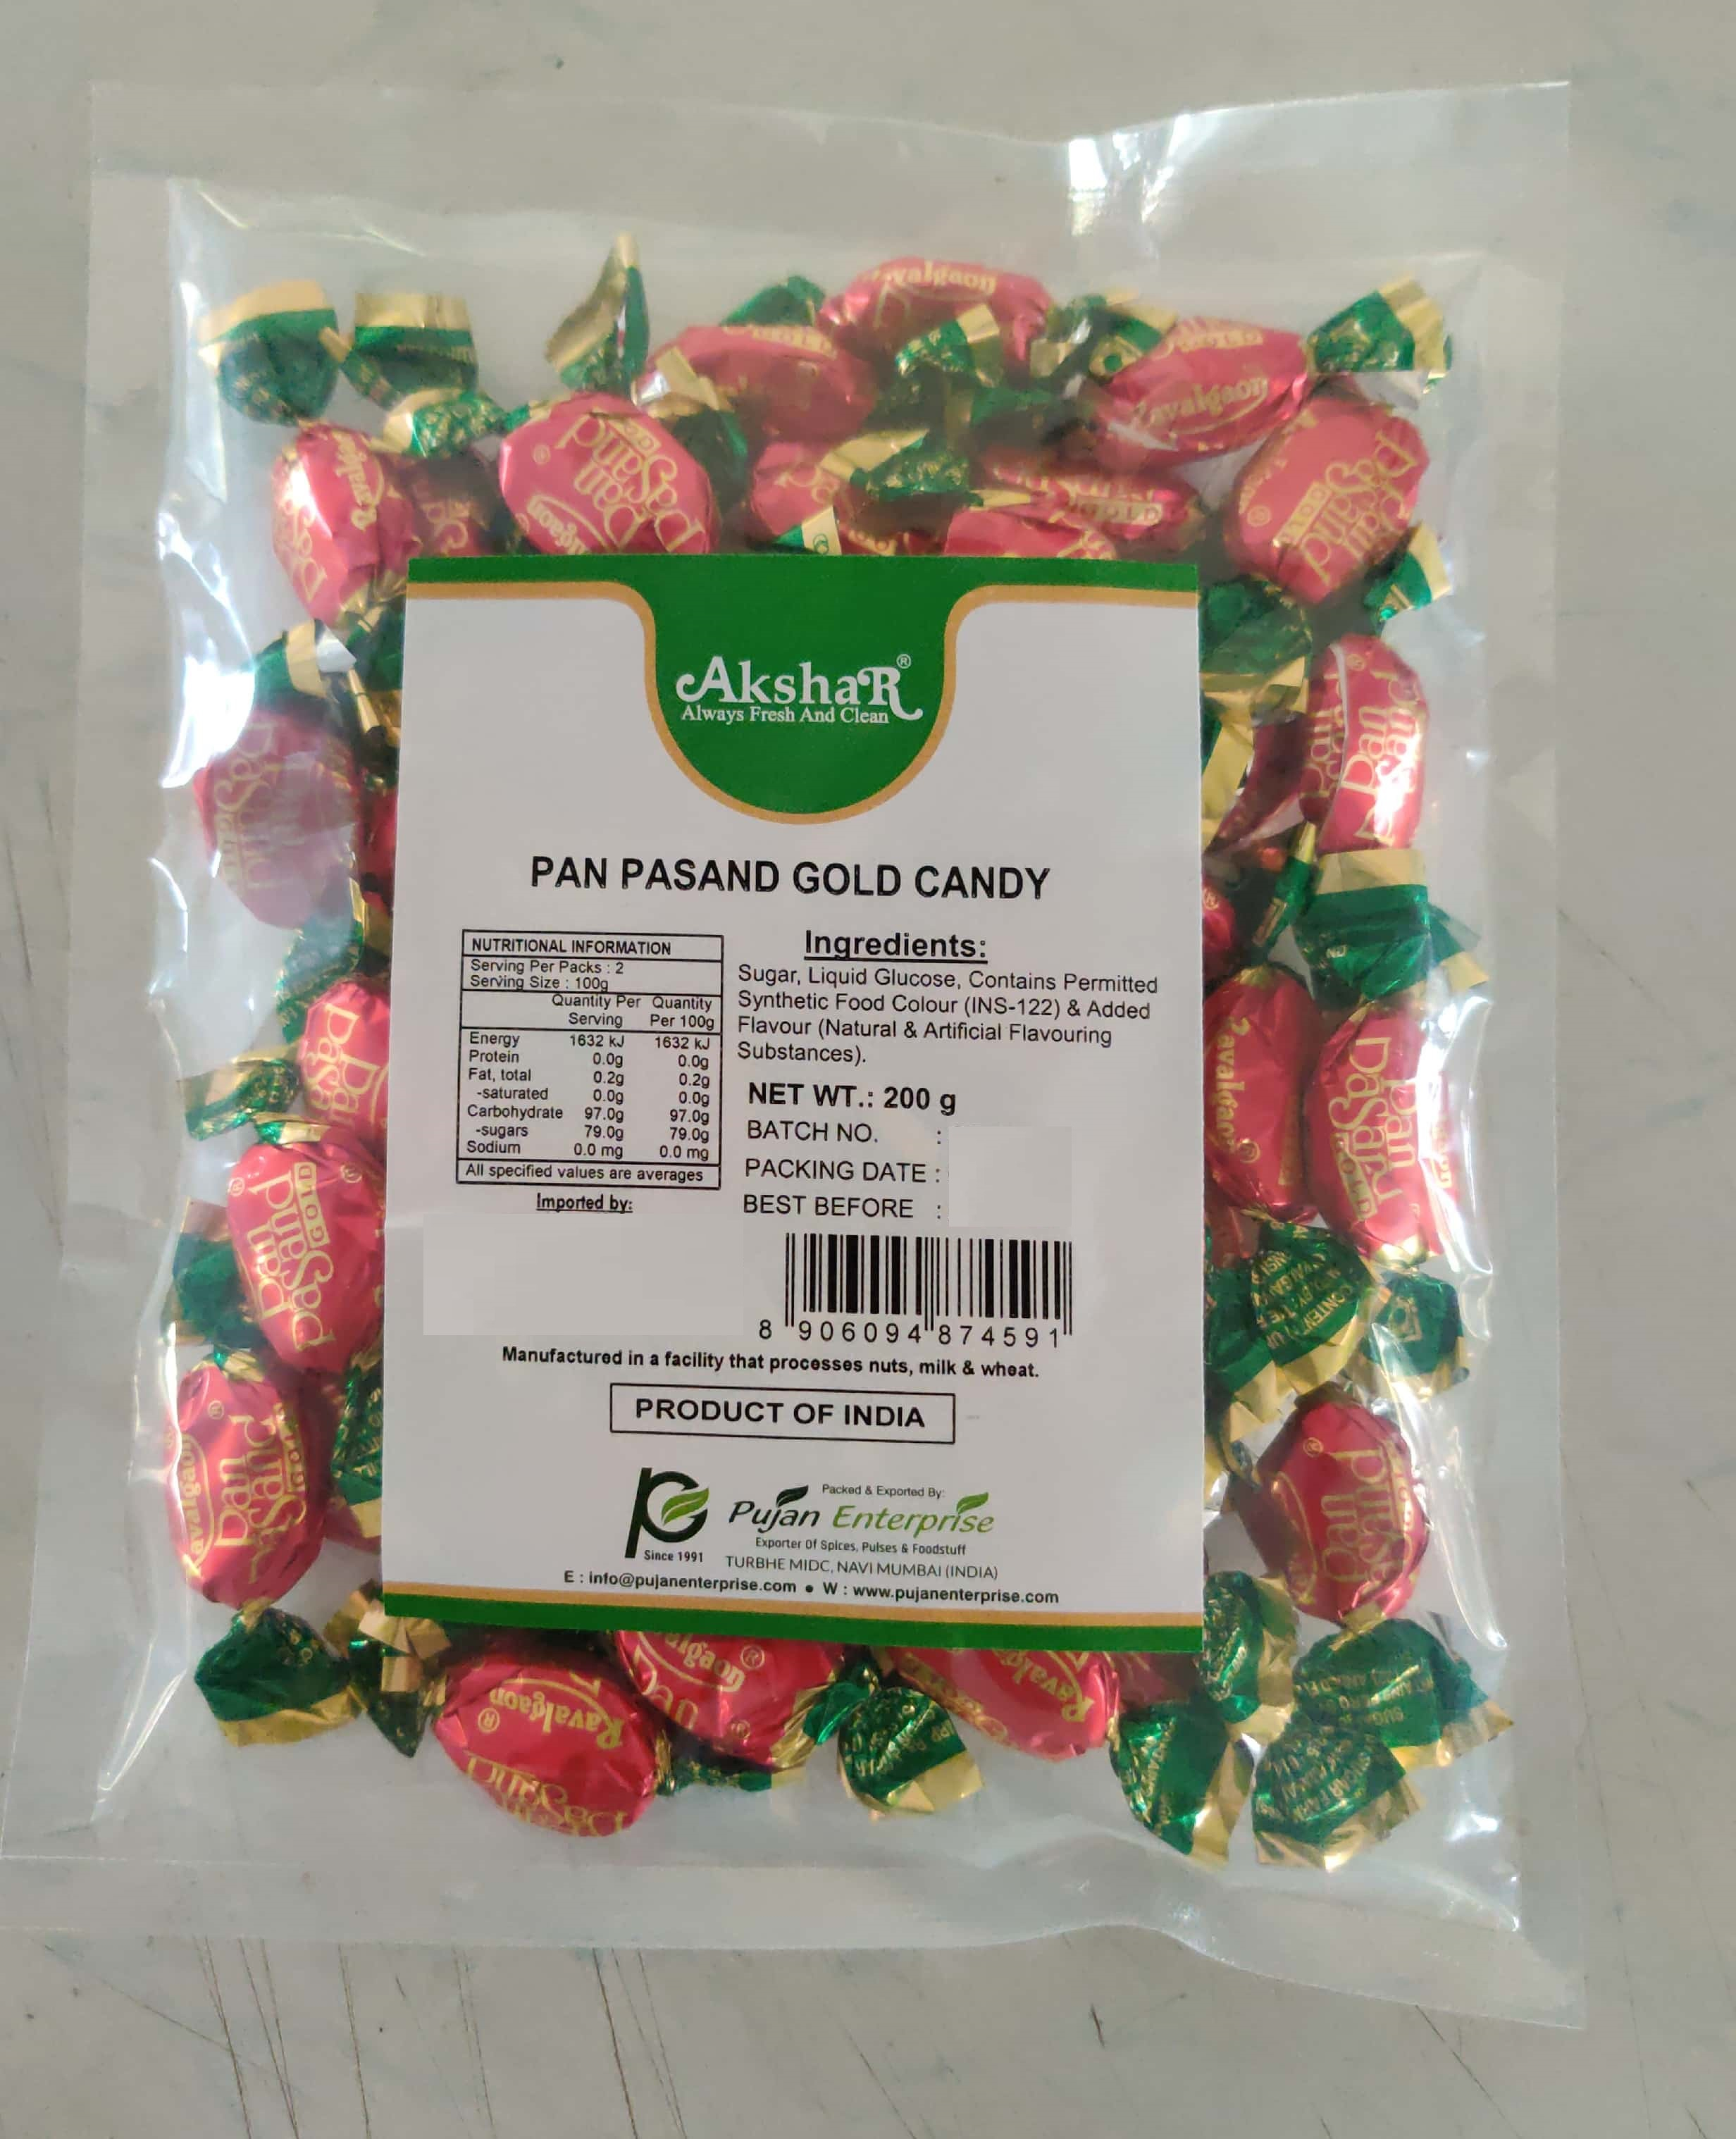 PAN PASAND GOLD CANDY